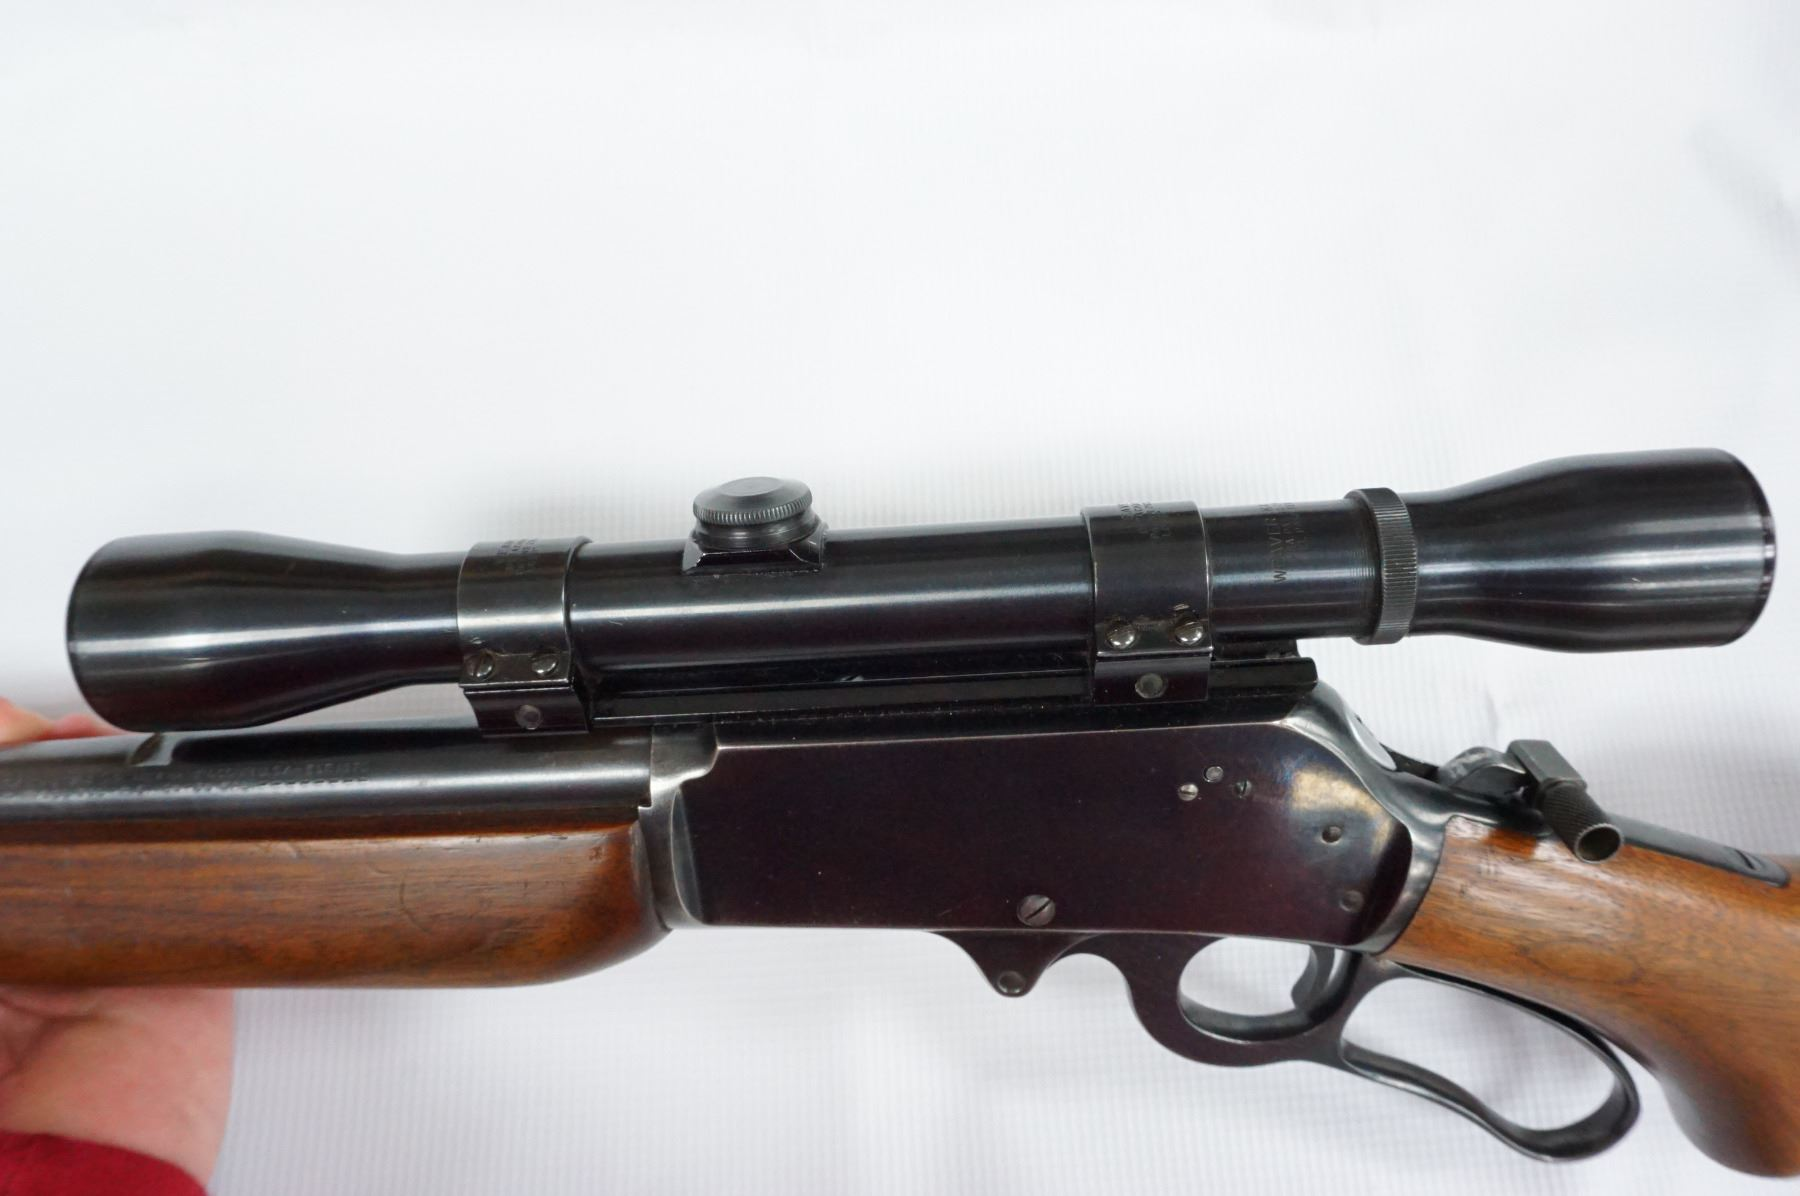 Manufacter Year 1949, Marlin 336-R C  Lever Action Rifle